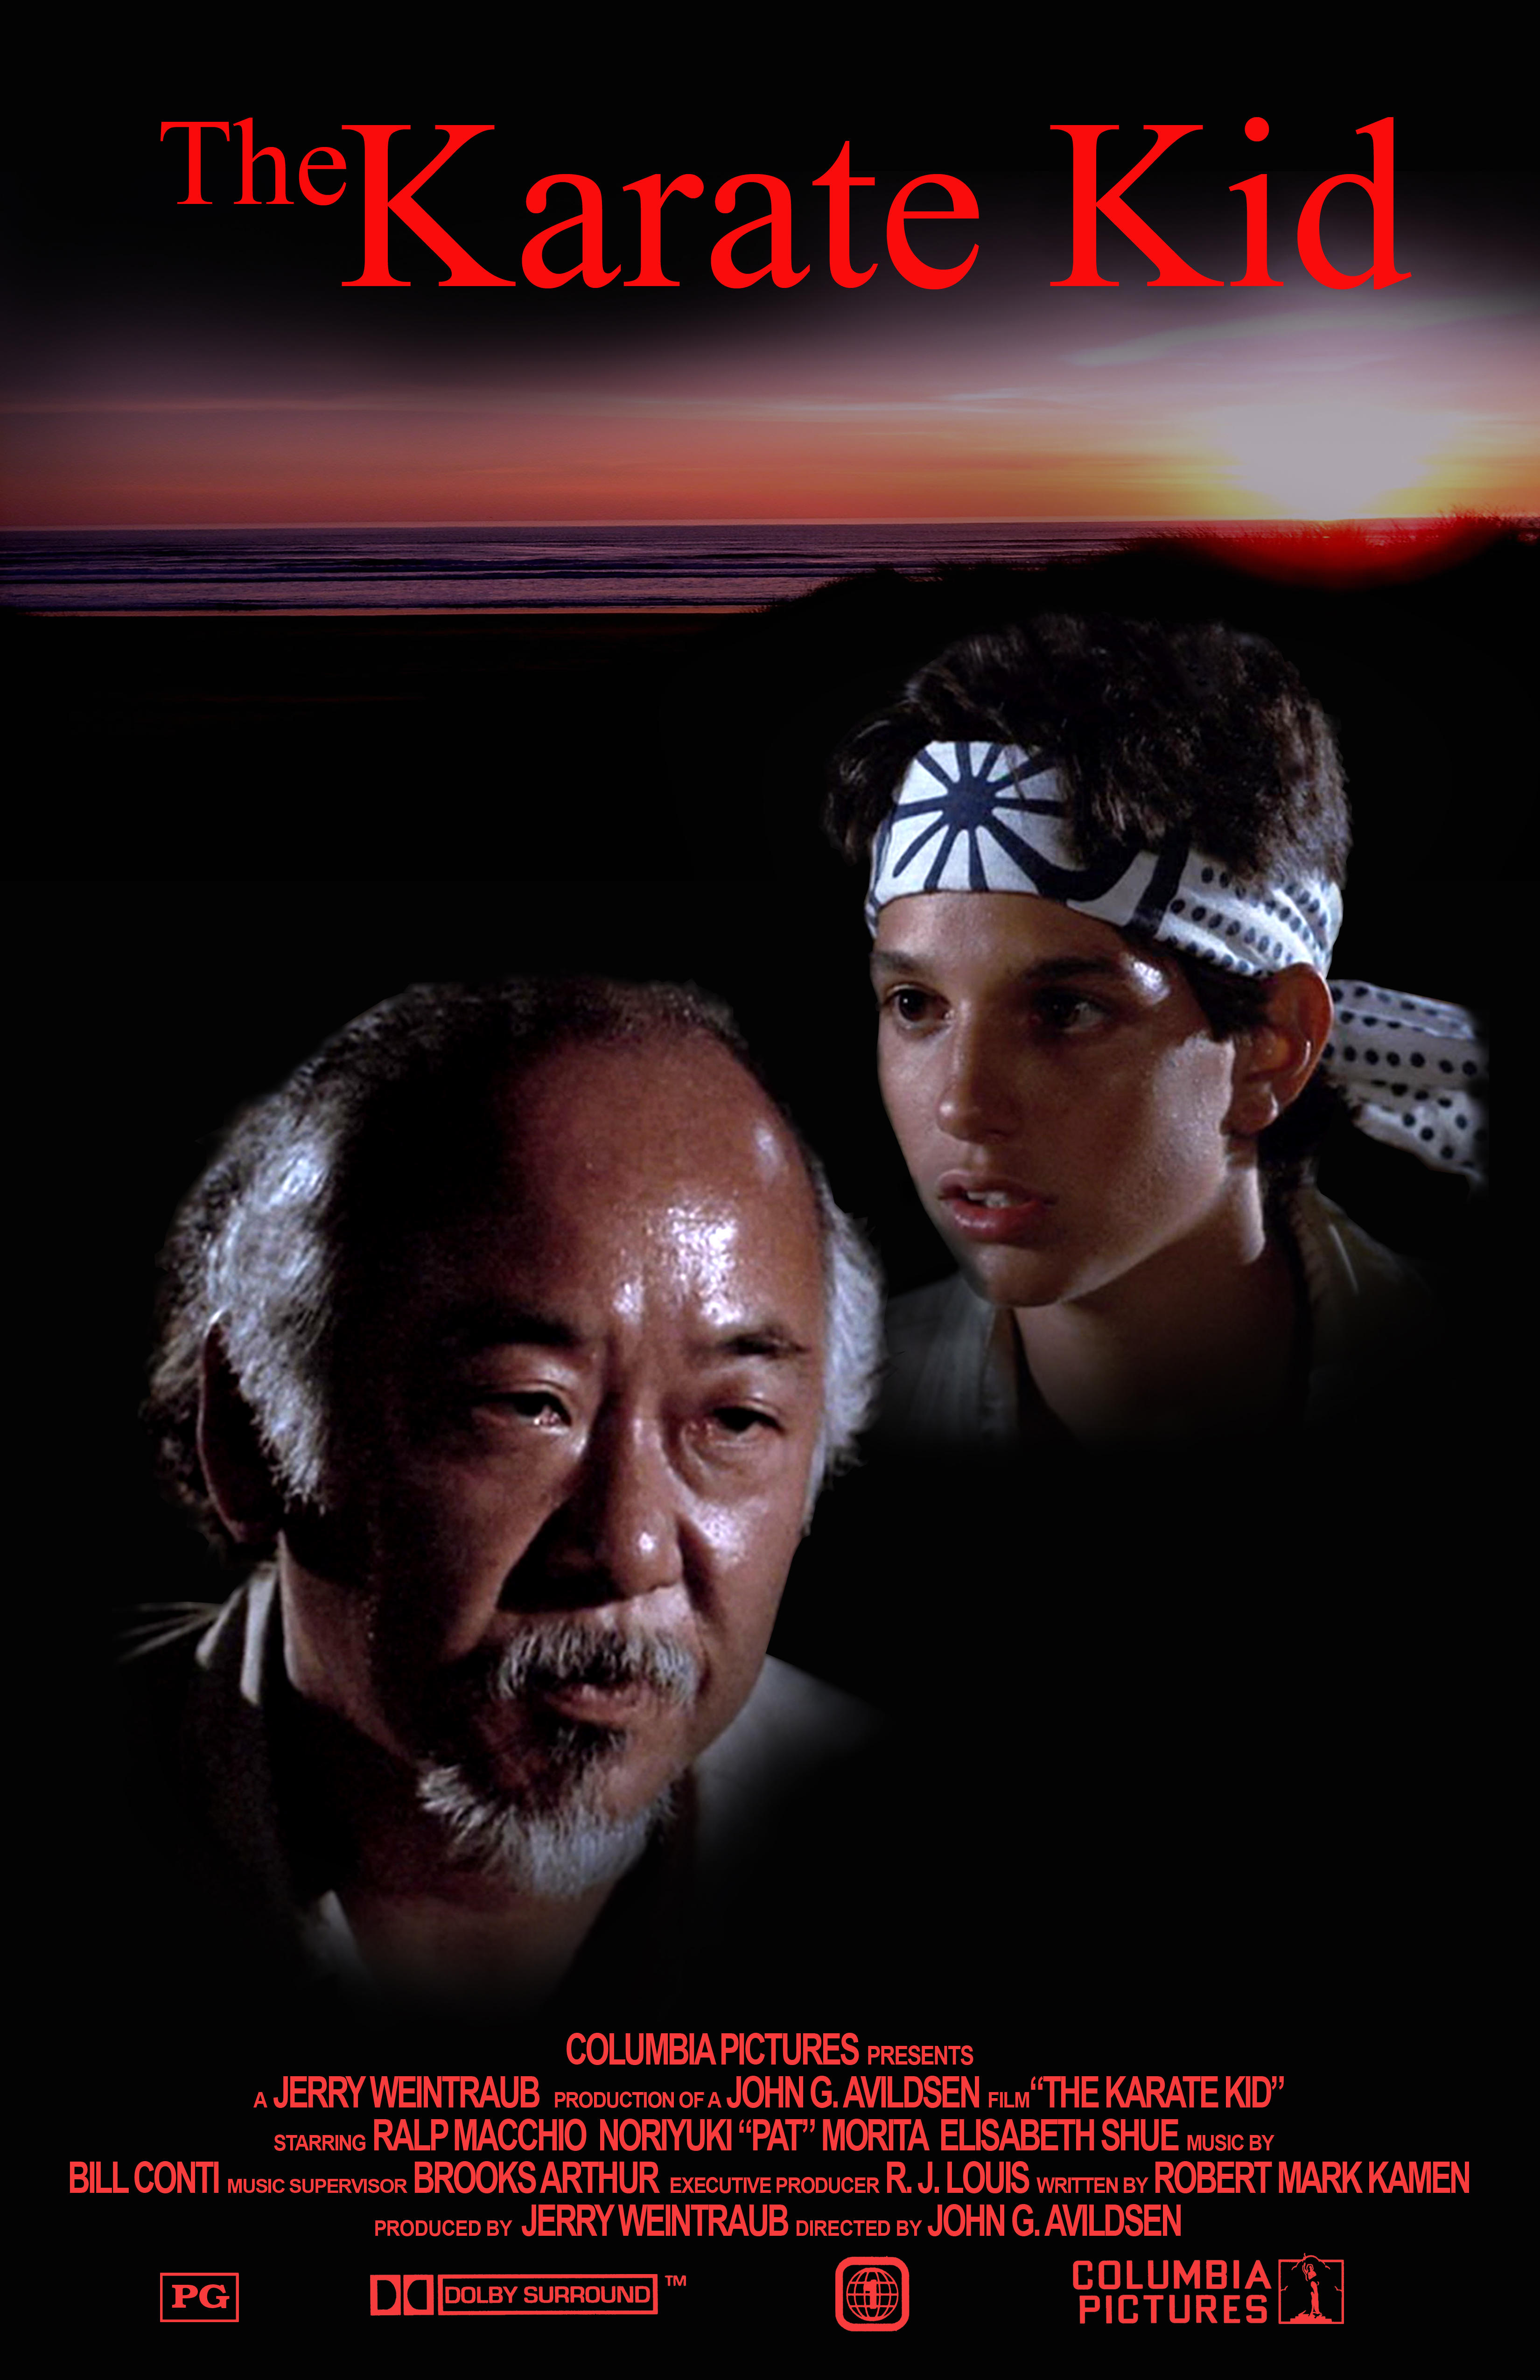 Who Is The Original Karate Kid